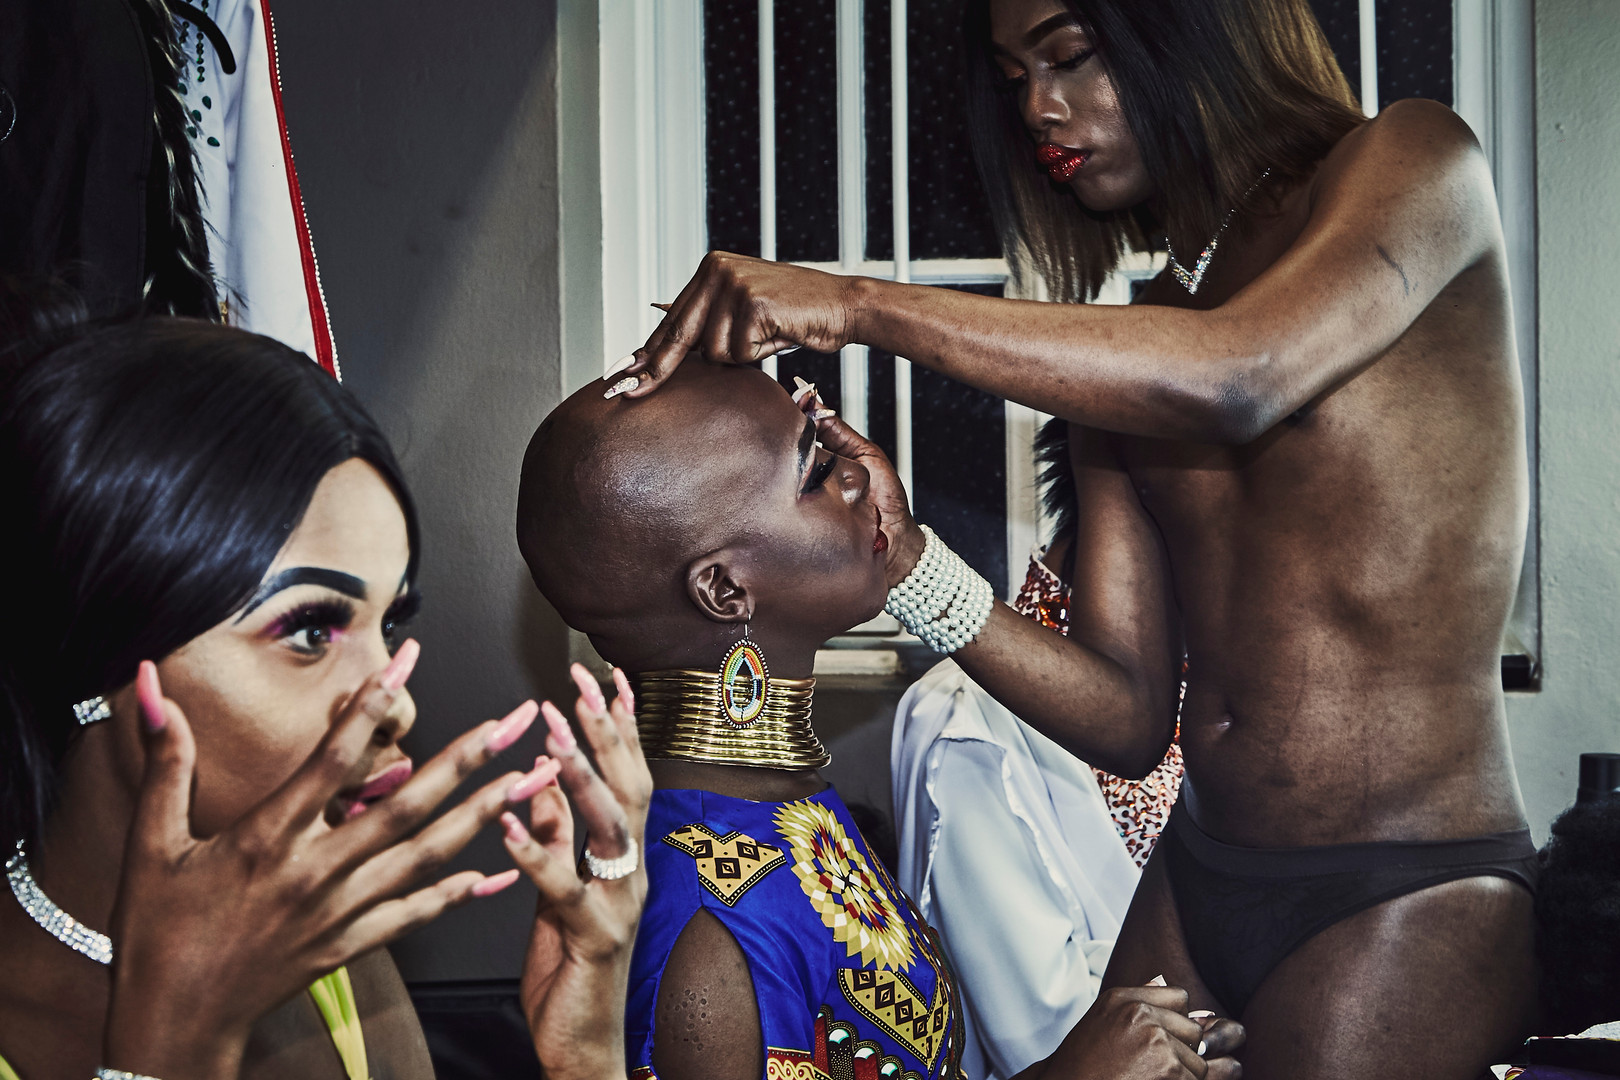 Noxolo Grootboom helps Belinda Qaqamba Fassie with her make-up backstage at the Miss Drag South Africa pageant which was held in September 2018 at the Opera House in Port Elizabeth.